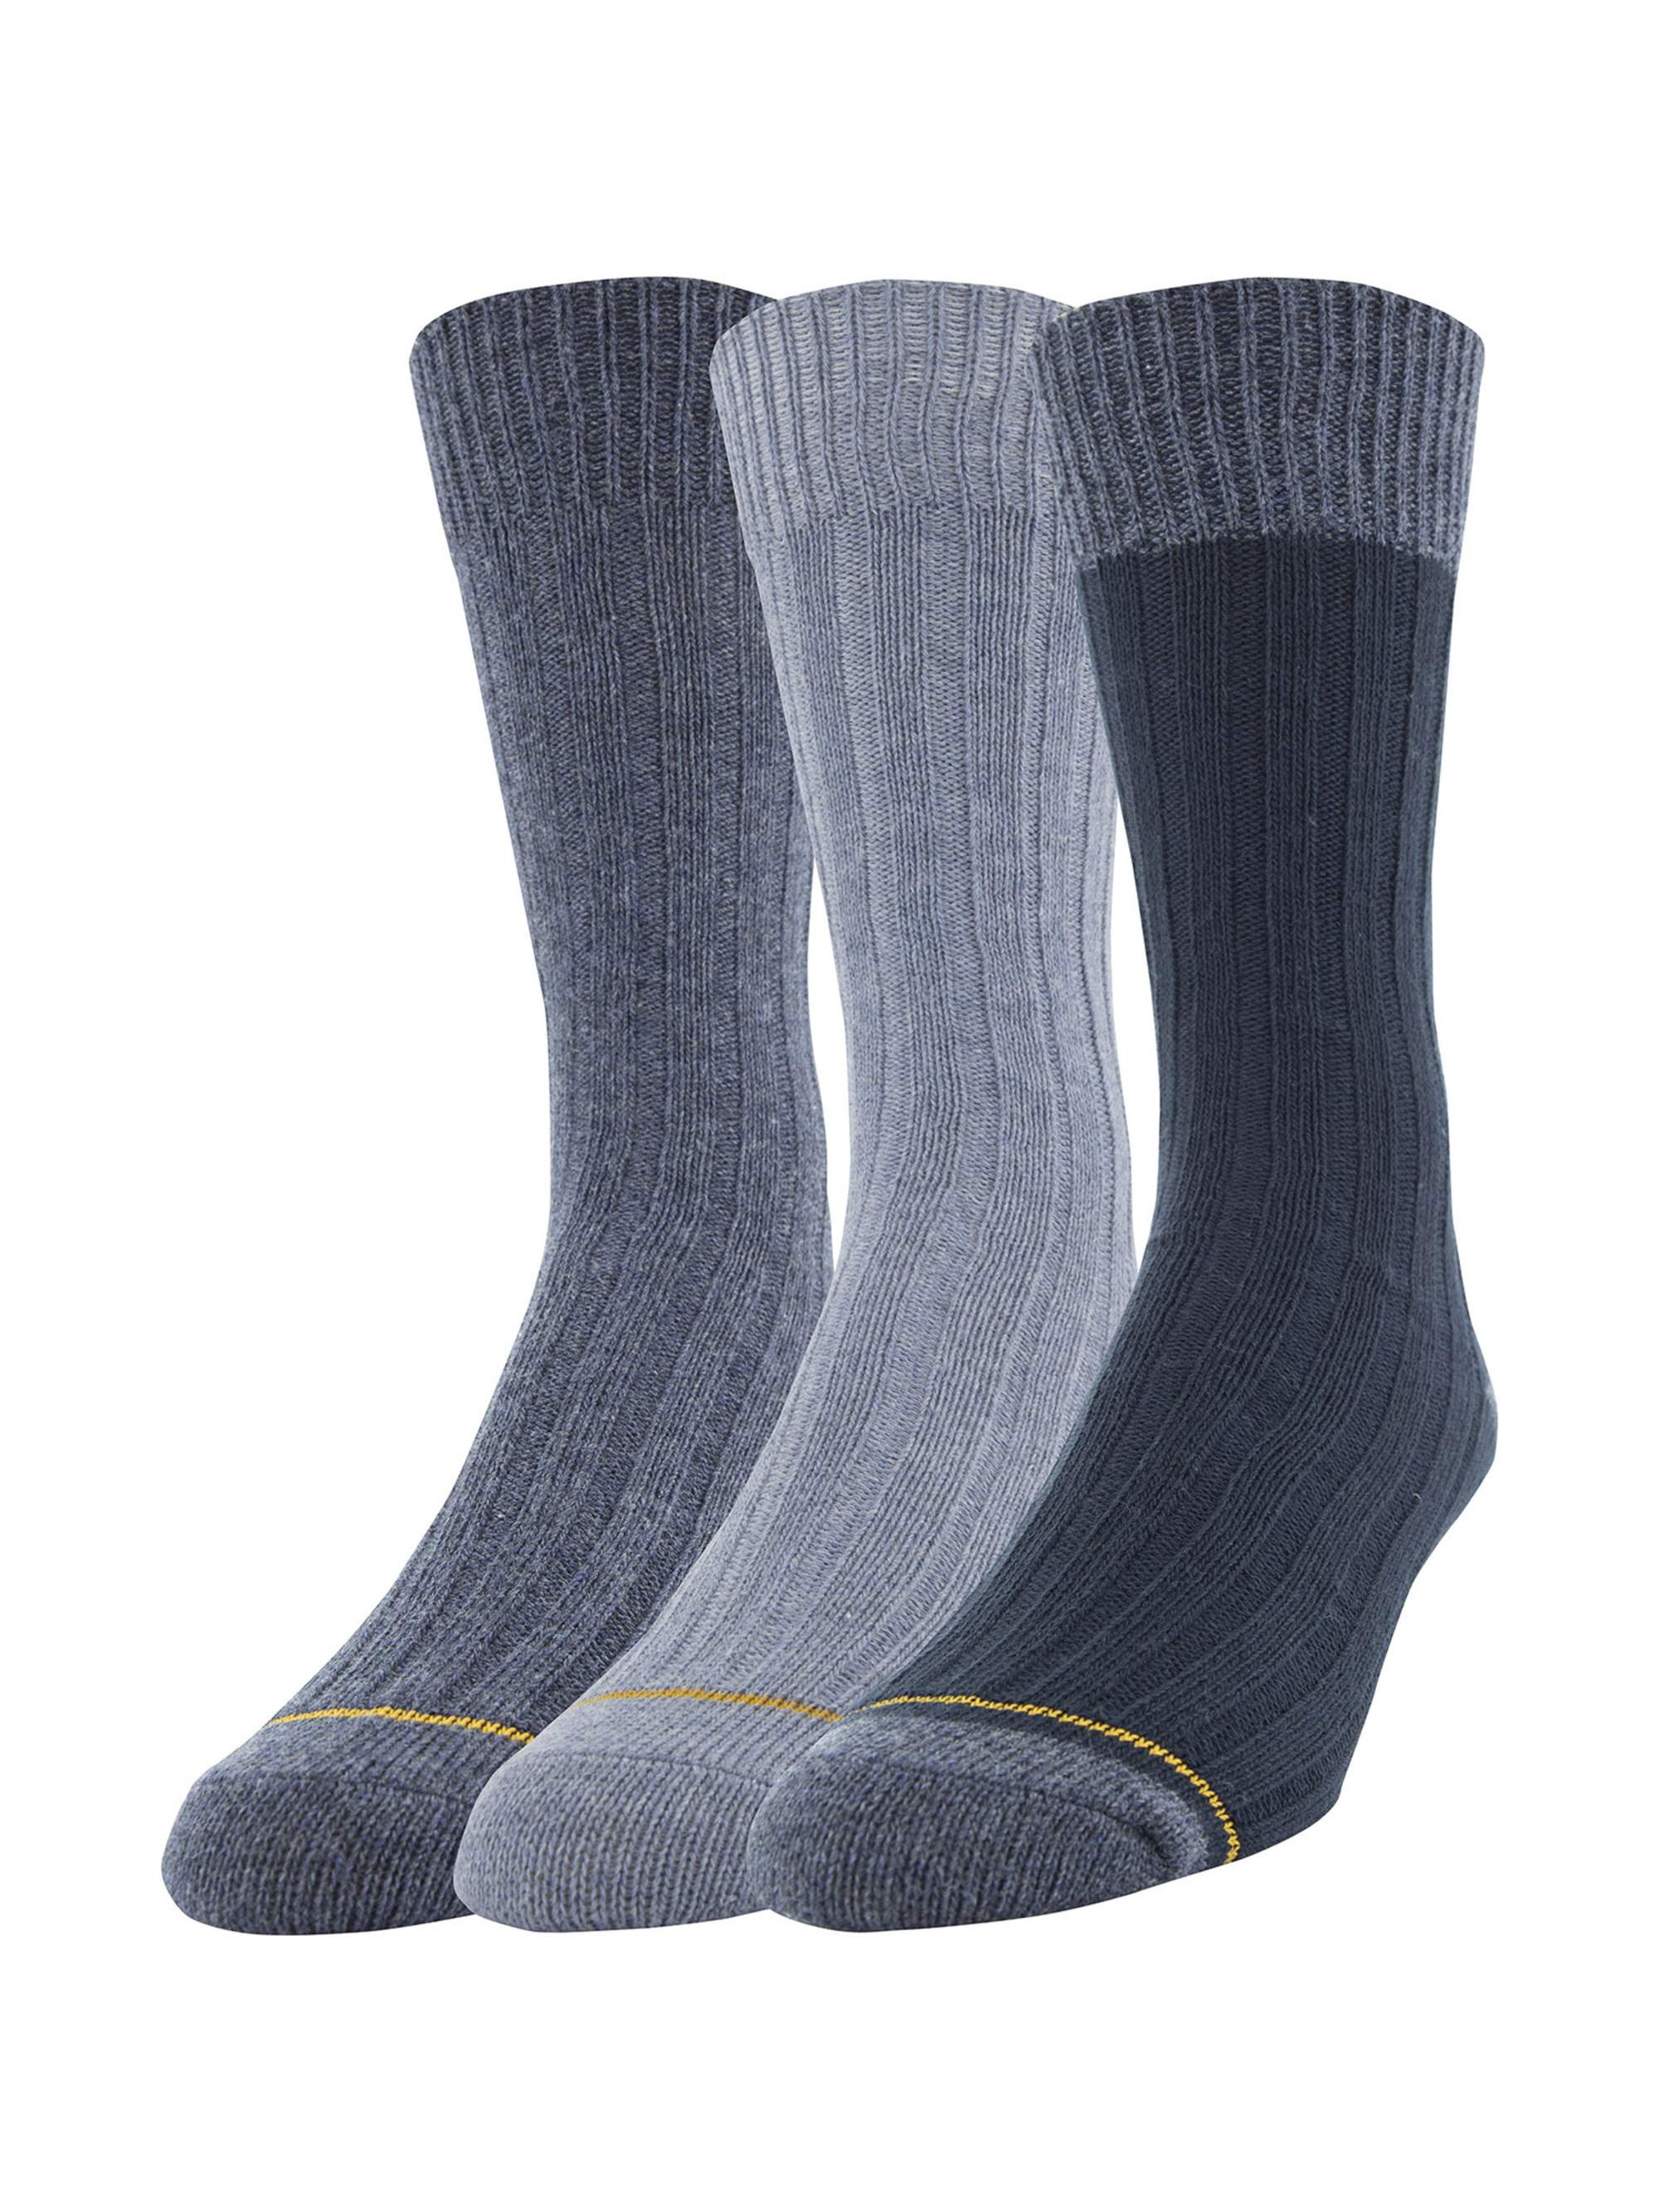 Men's Cotton Rib Dress Casual Socks, 3-Pack